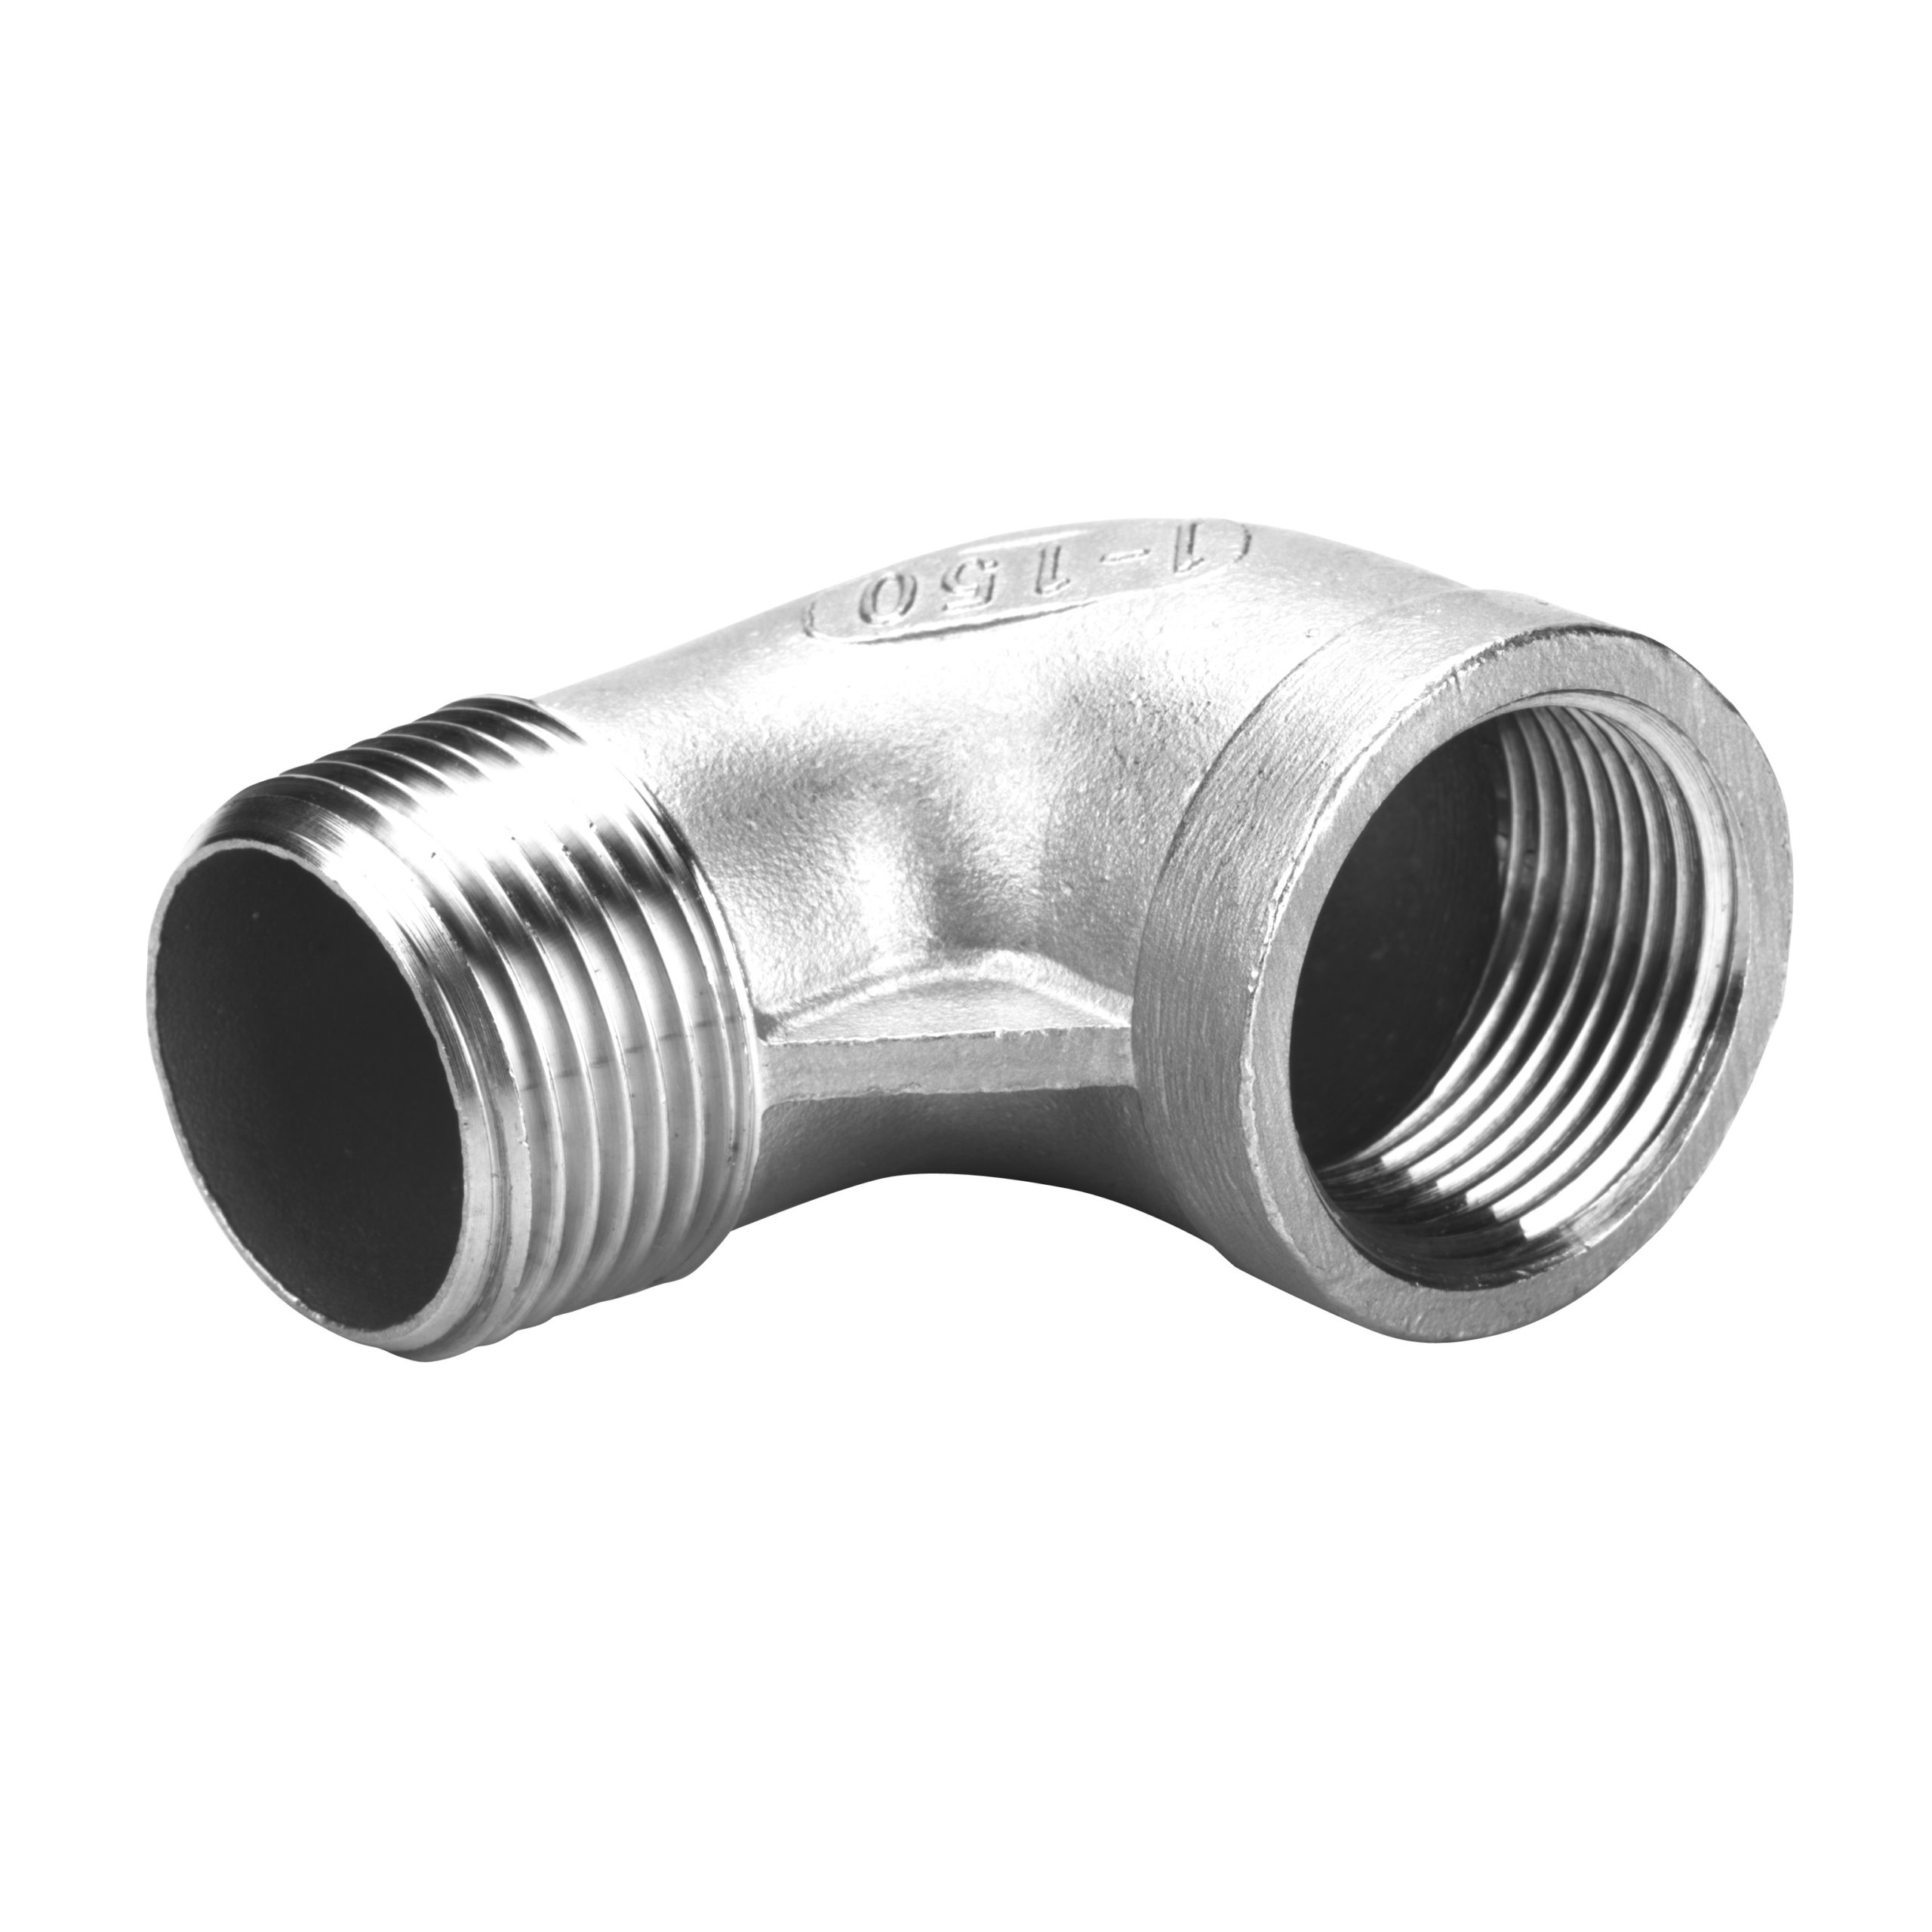 Pipe Elbow - 90 Degree - Female to Male